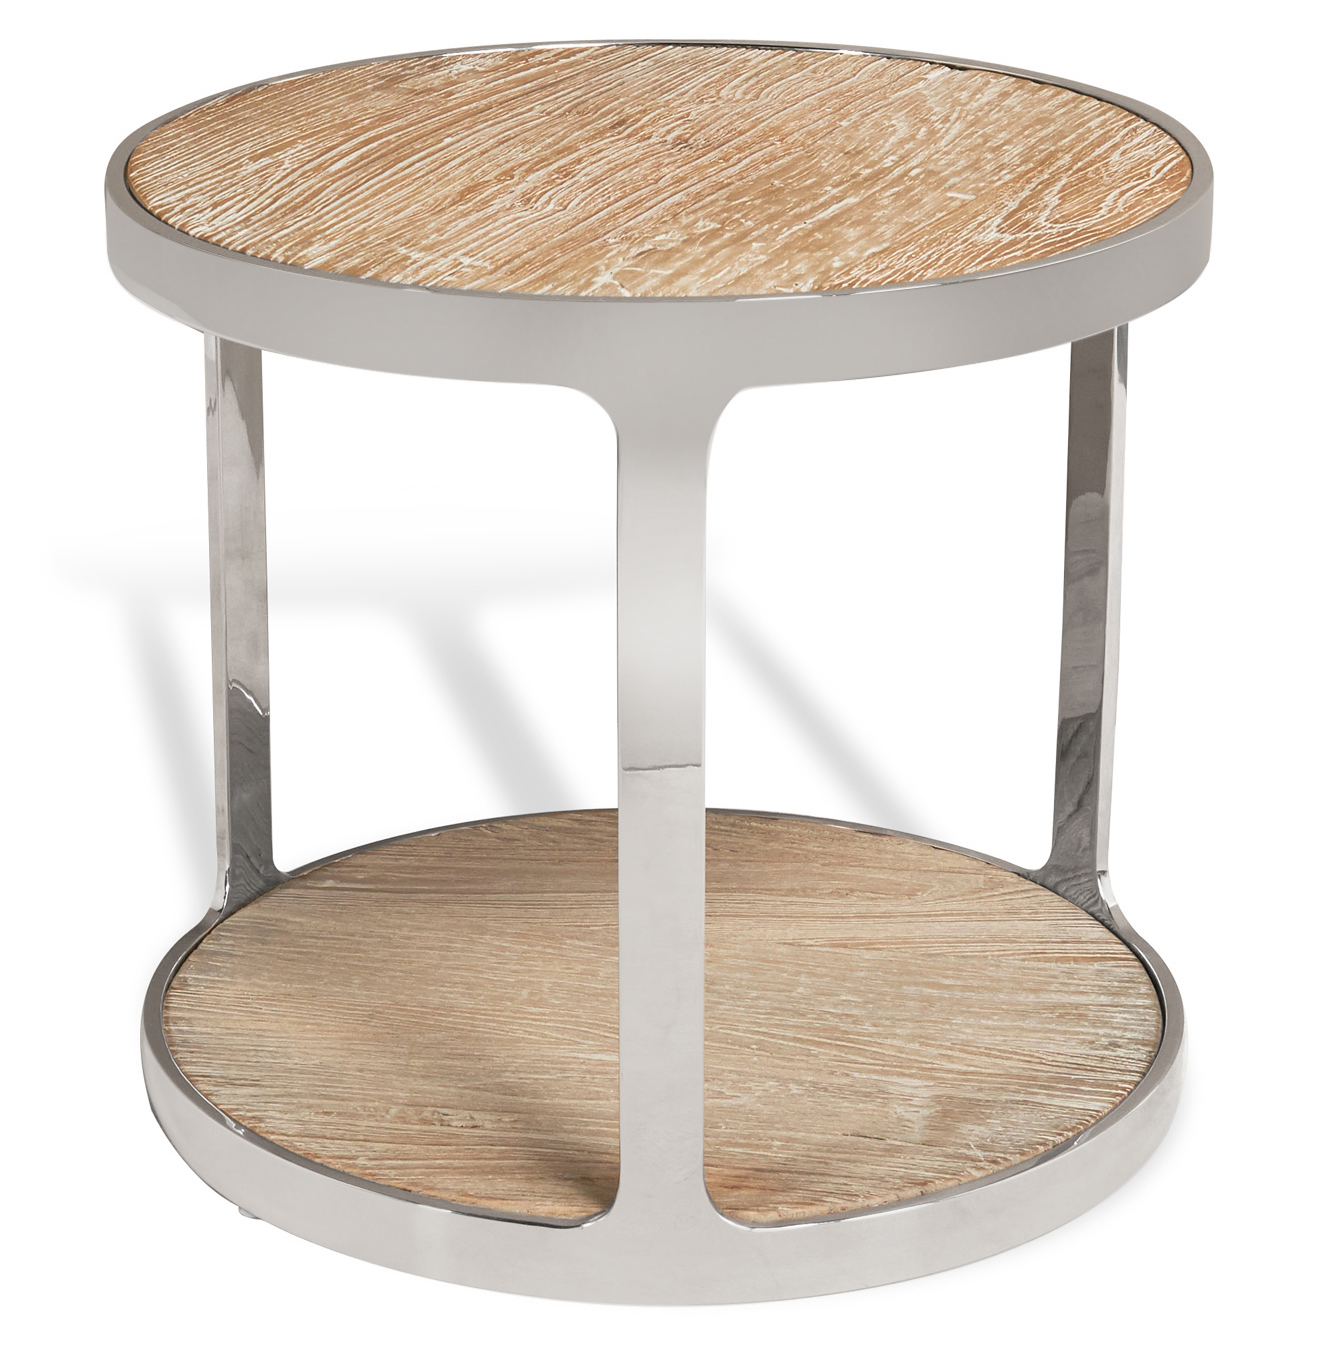 Zanuso Industrial Reclaimed Elm Stainless Steel Round Side Table